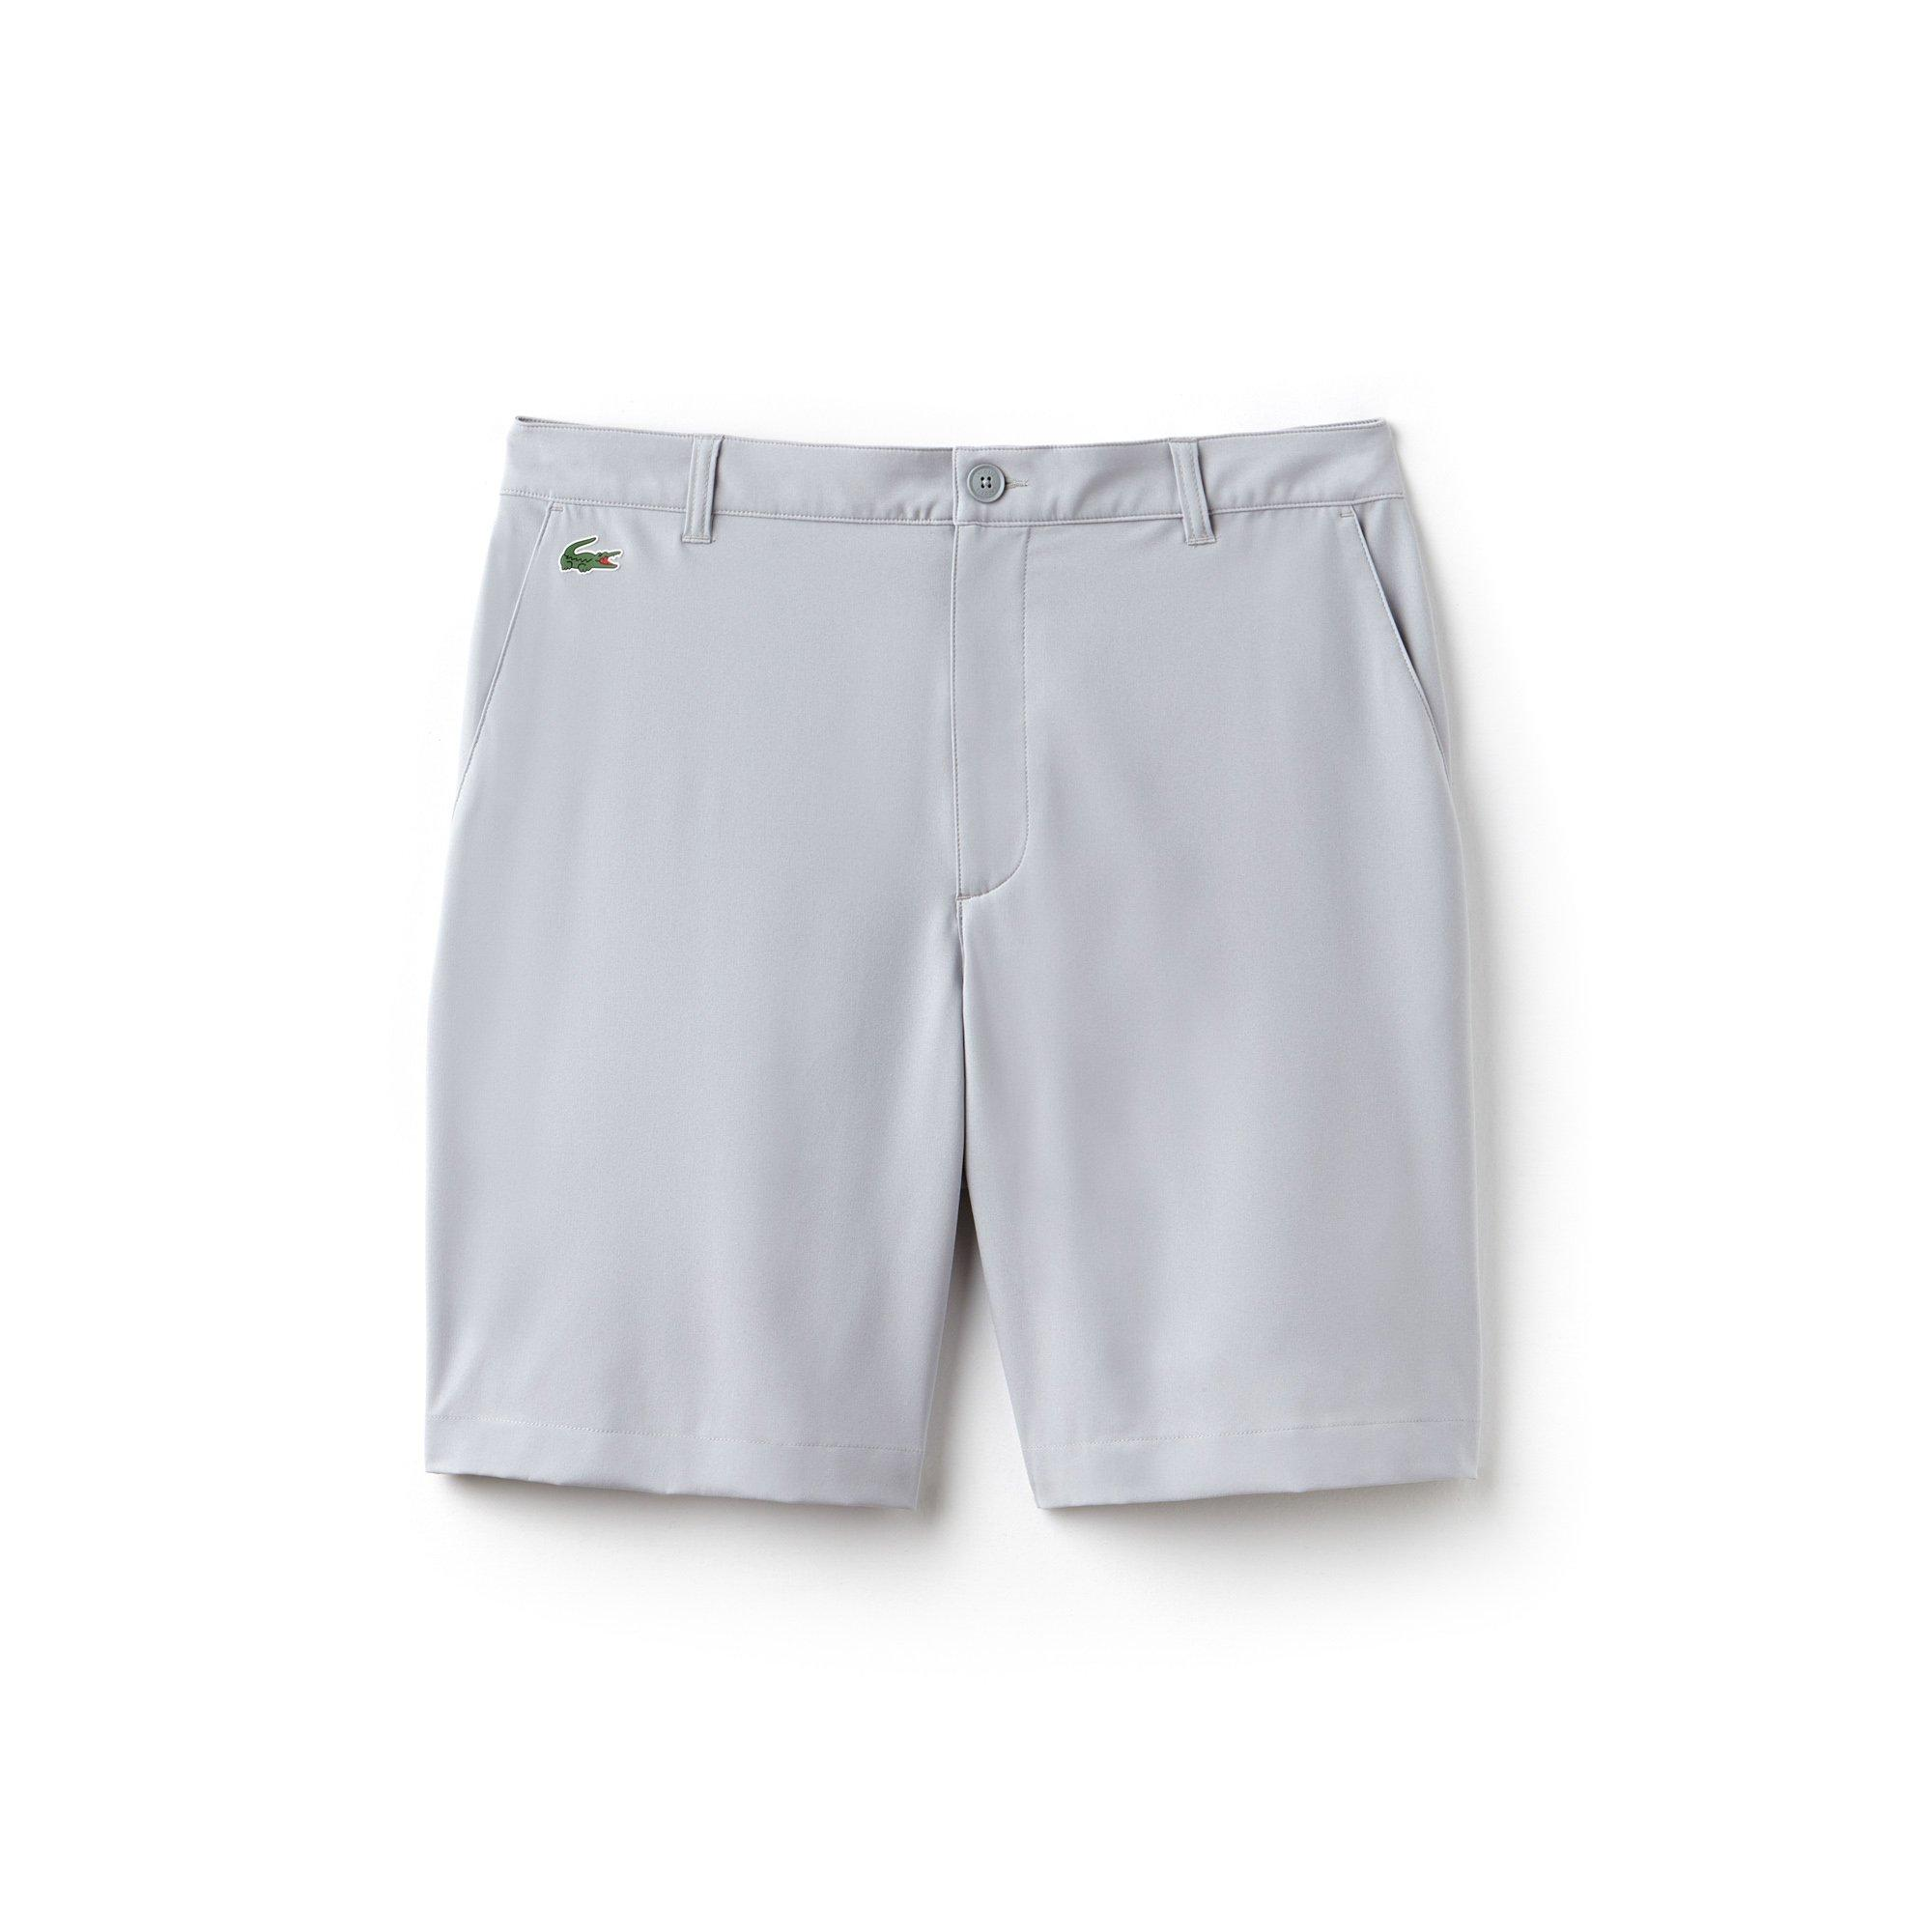 Men's Stretch Berumda Shorts